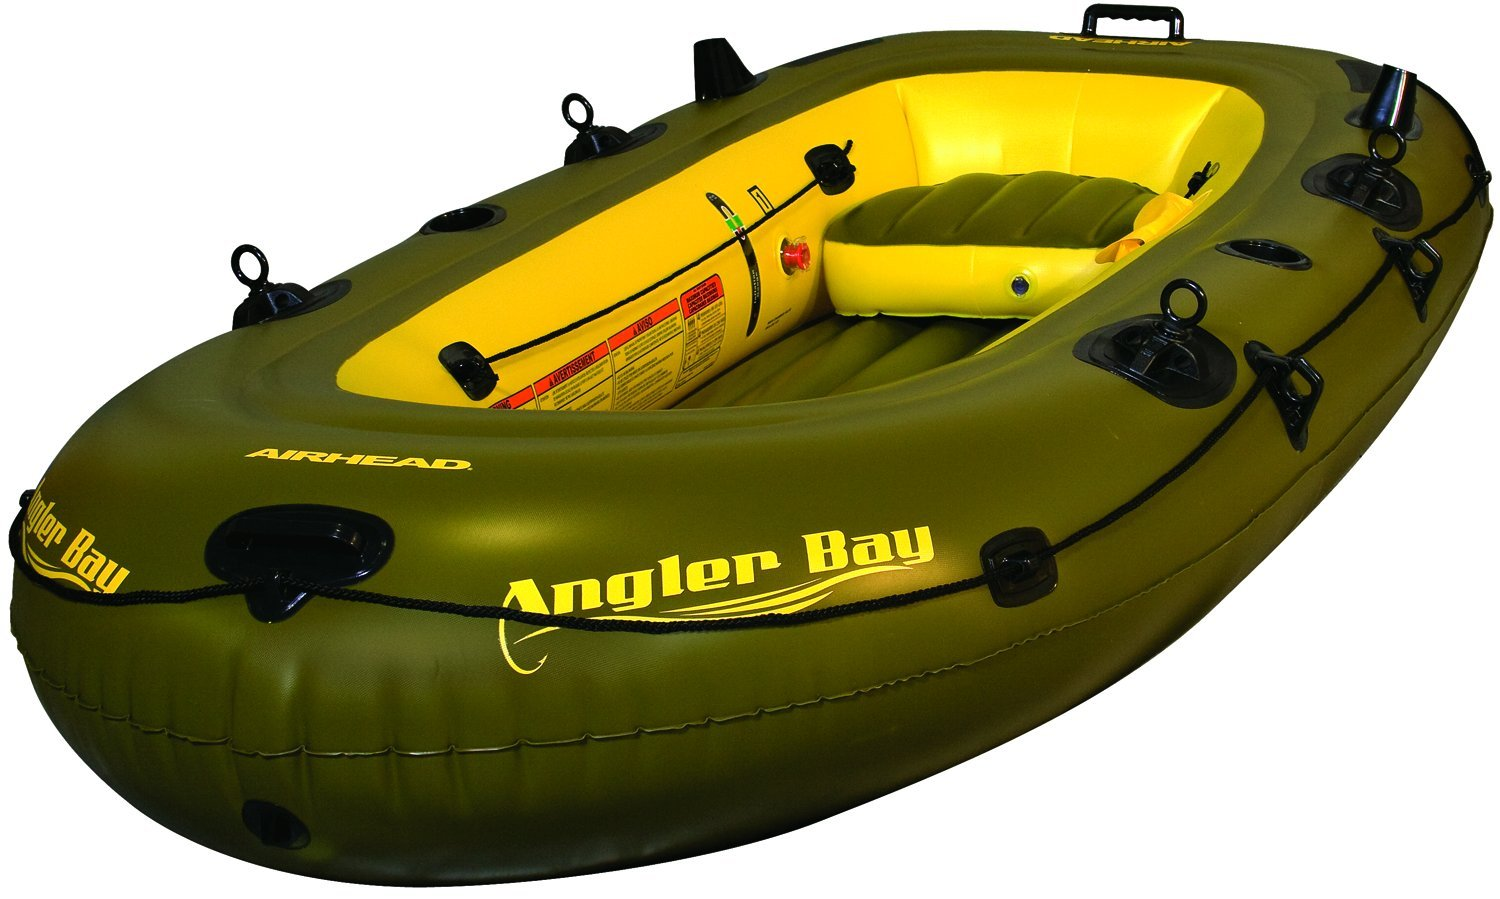 AIRHEAD AHIBF-04 Angler Bay 4 Person Inflatable Boat by Airhead